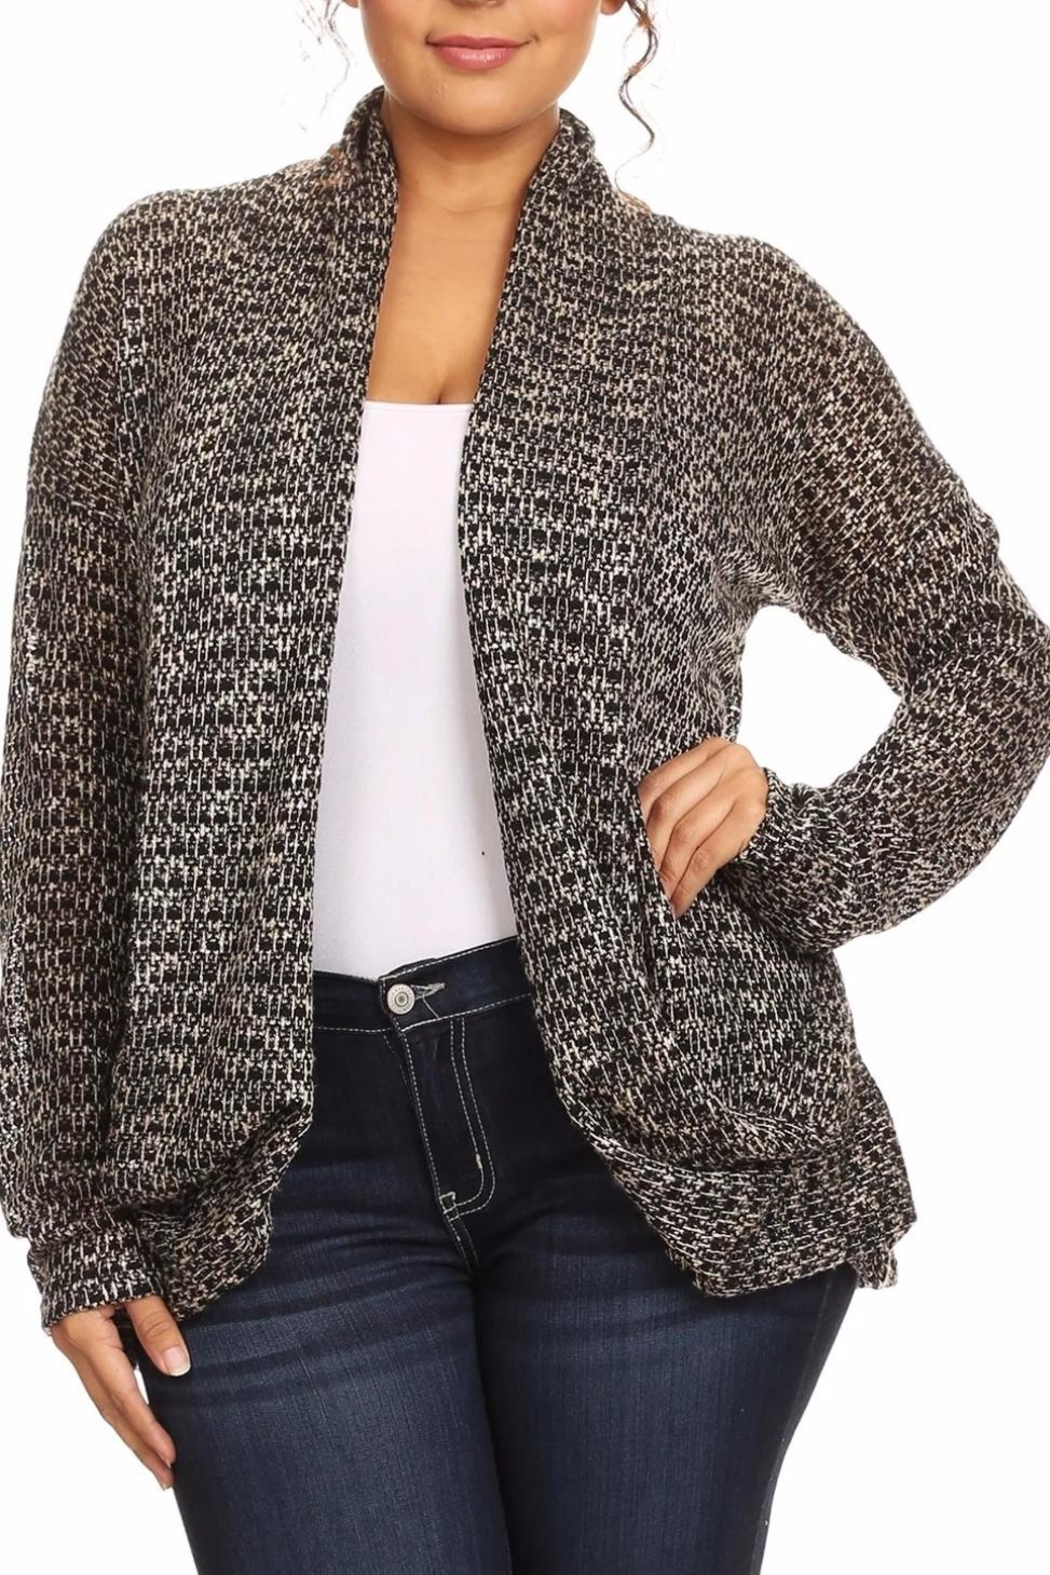 Poliana Plus The Emily Cardigan - Main Image